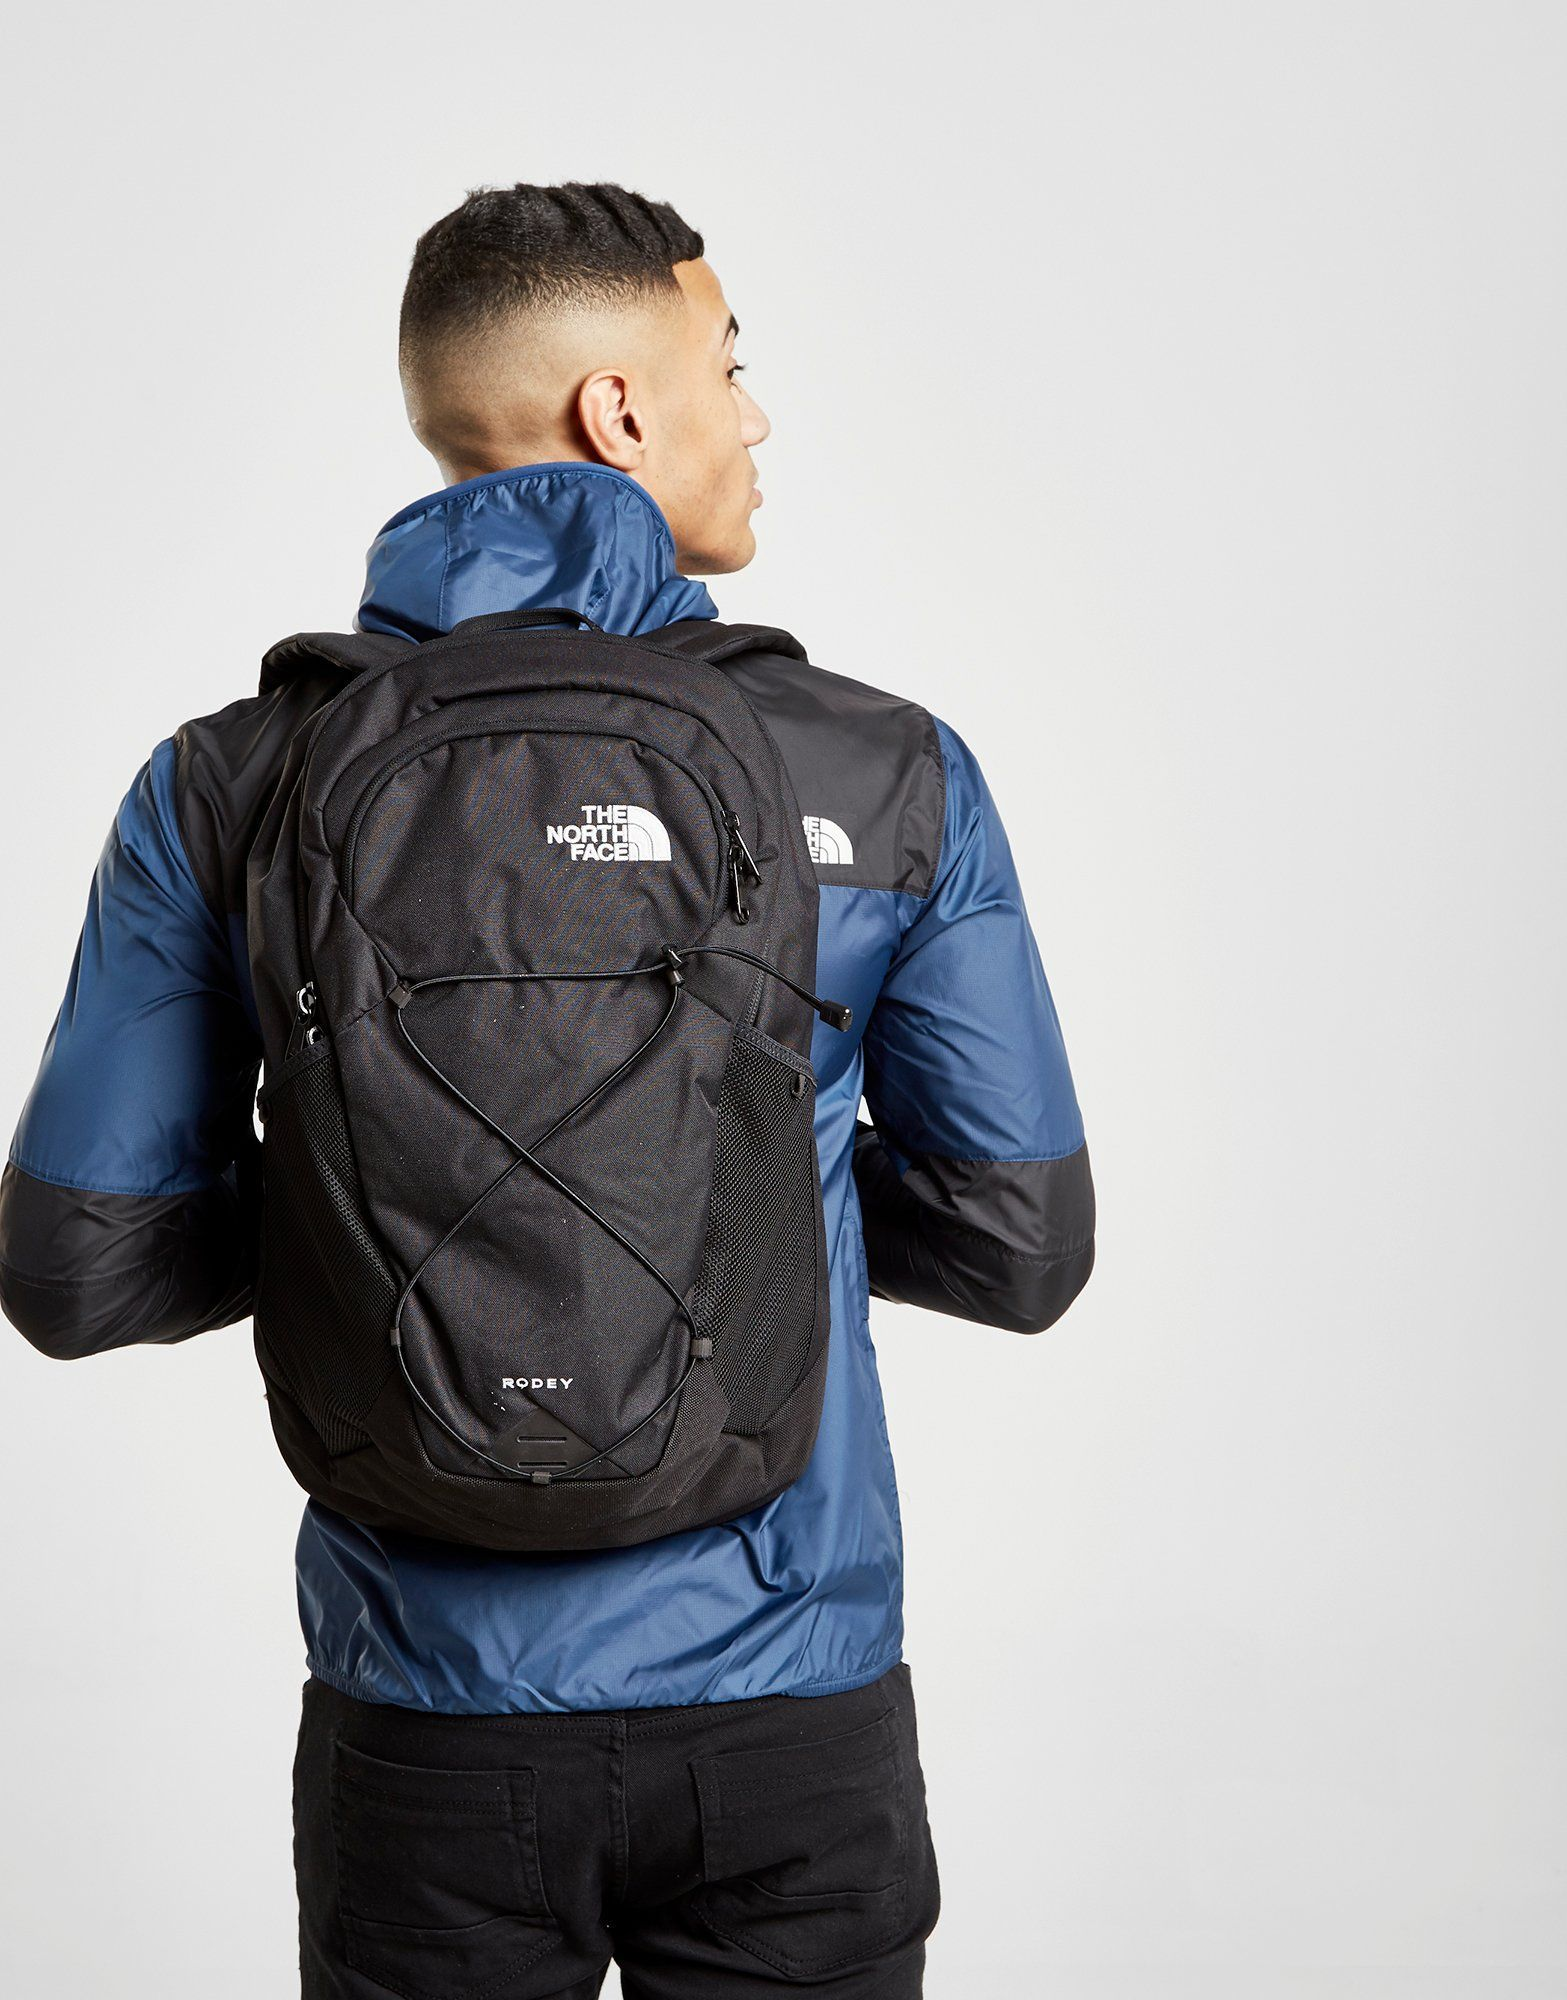 8ebbc8bcc The North Face Rodey Backpack | Wishlist | The north face, Jd sports ...